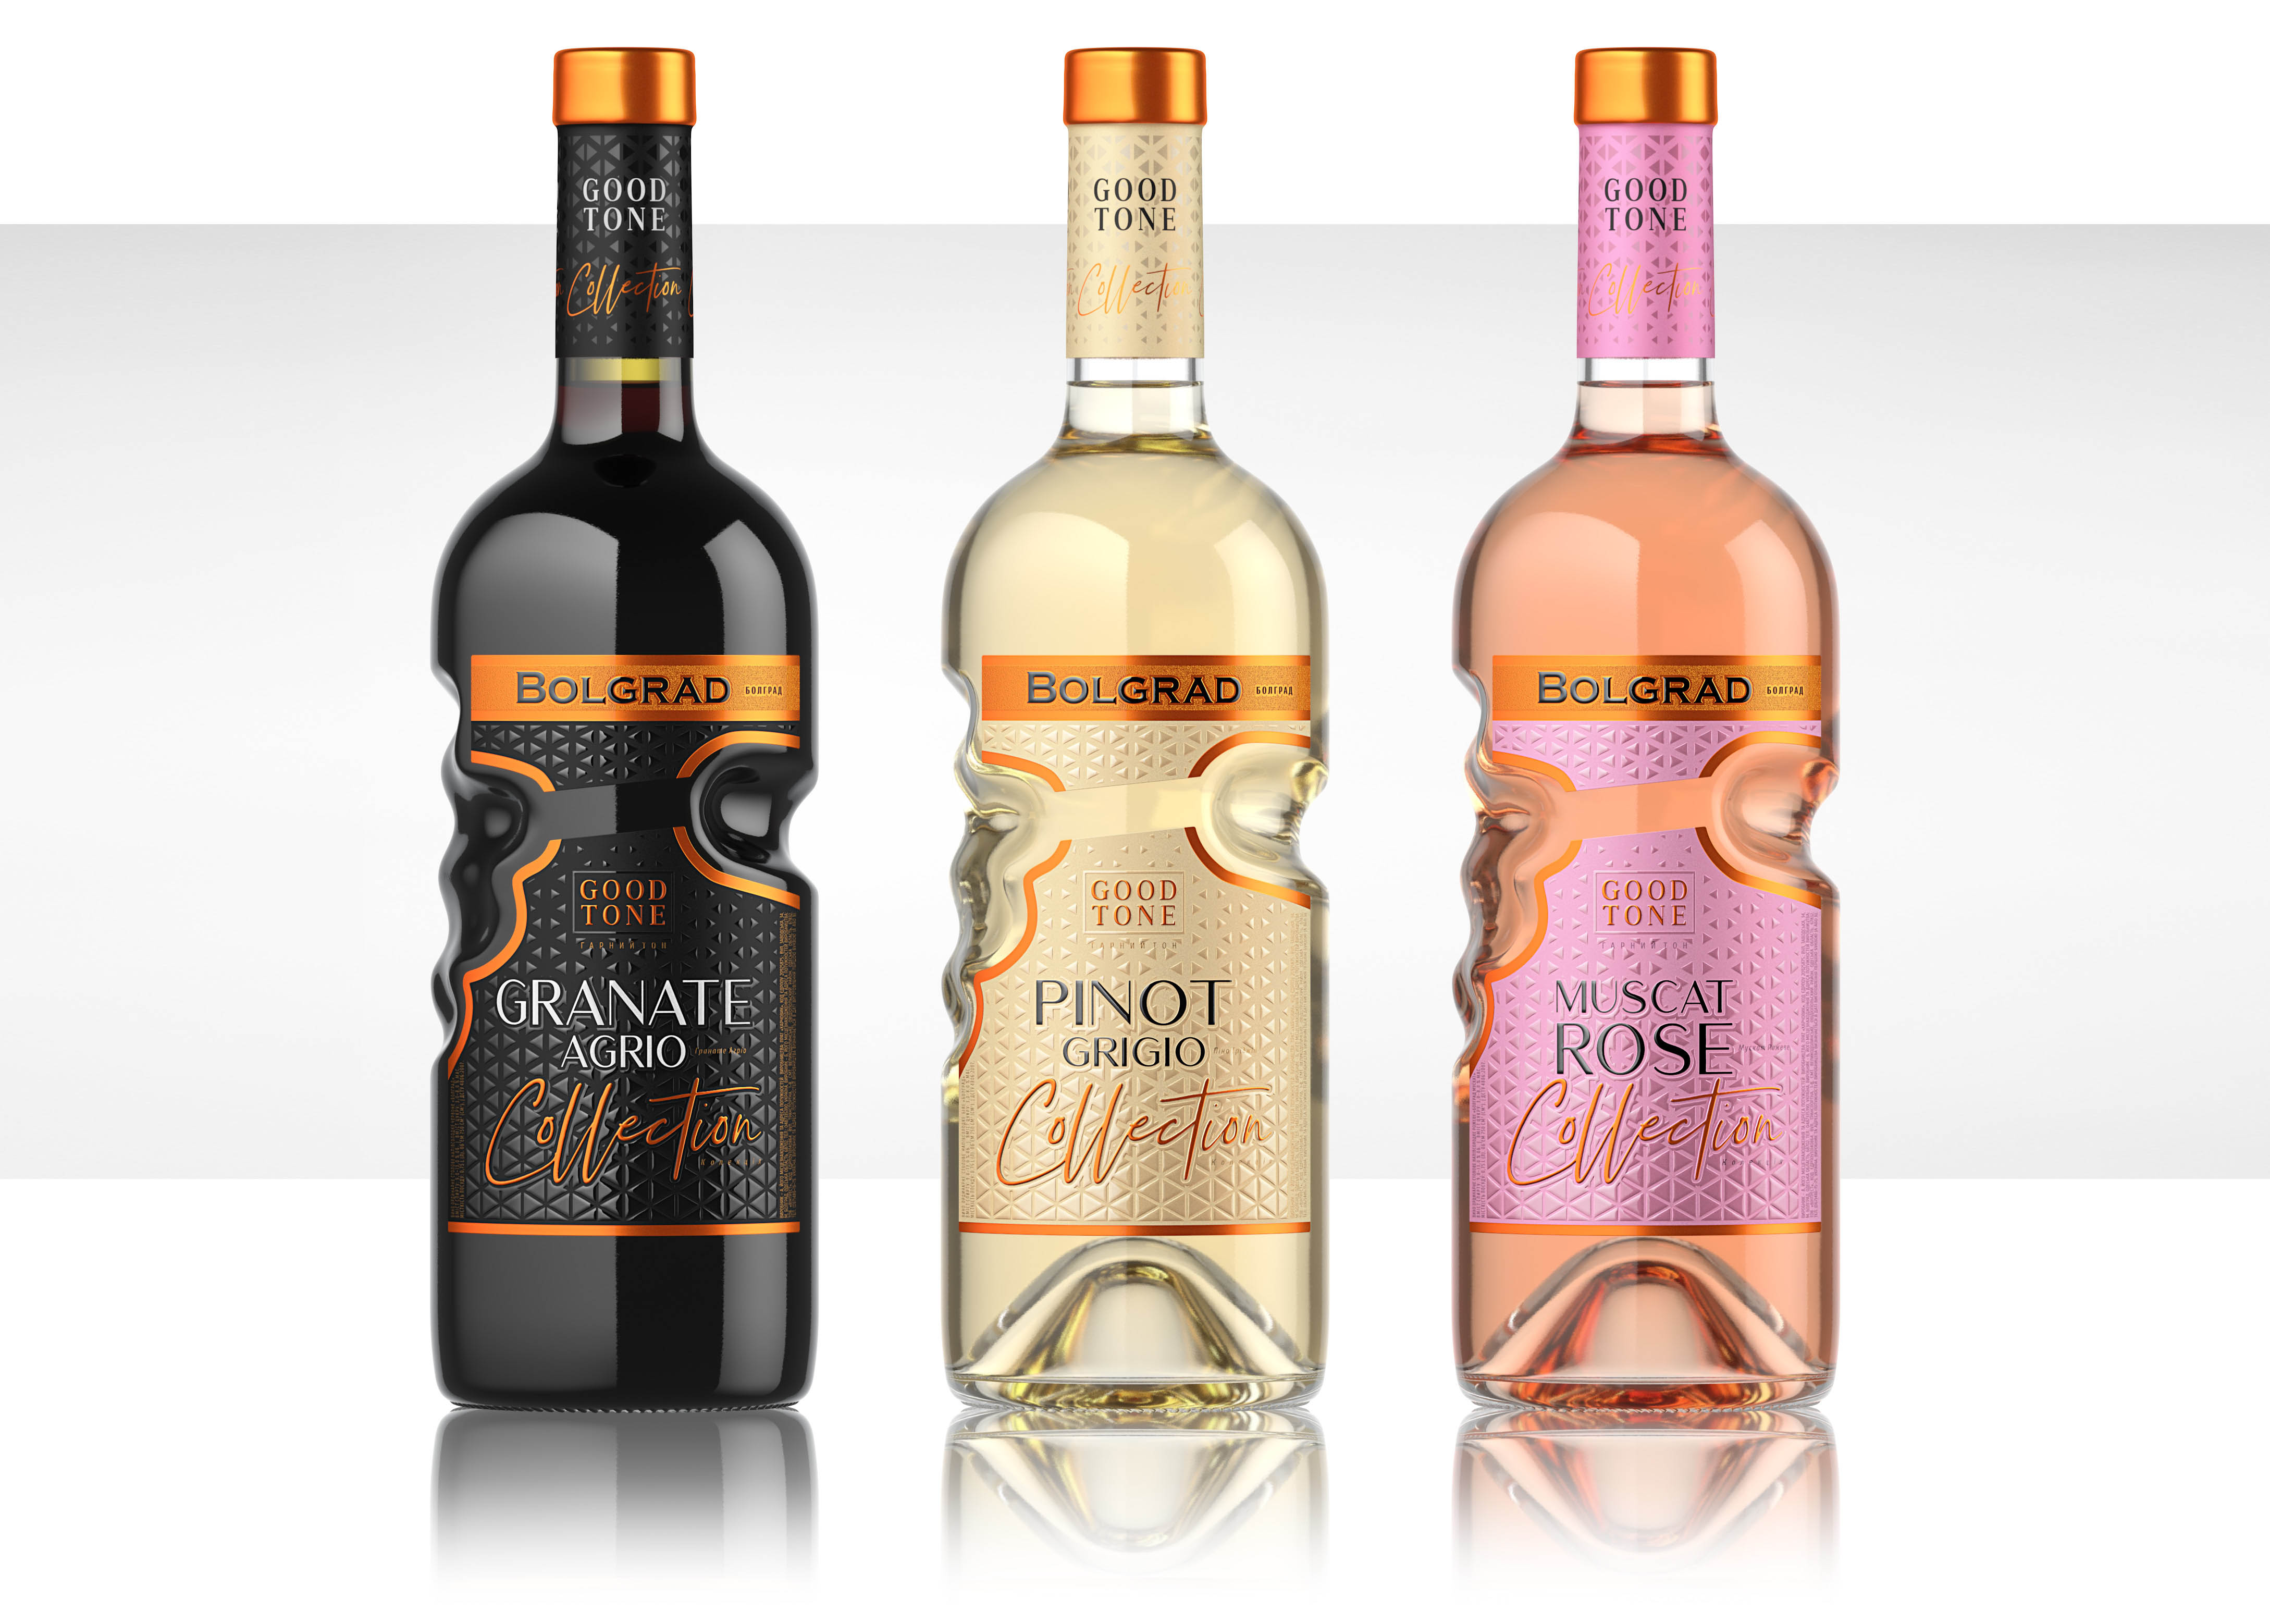 Shumi Love Design Create Packaging for Good Tone Bolgrad Collection of Wine